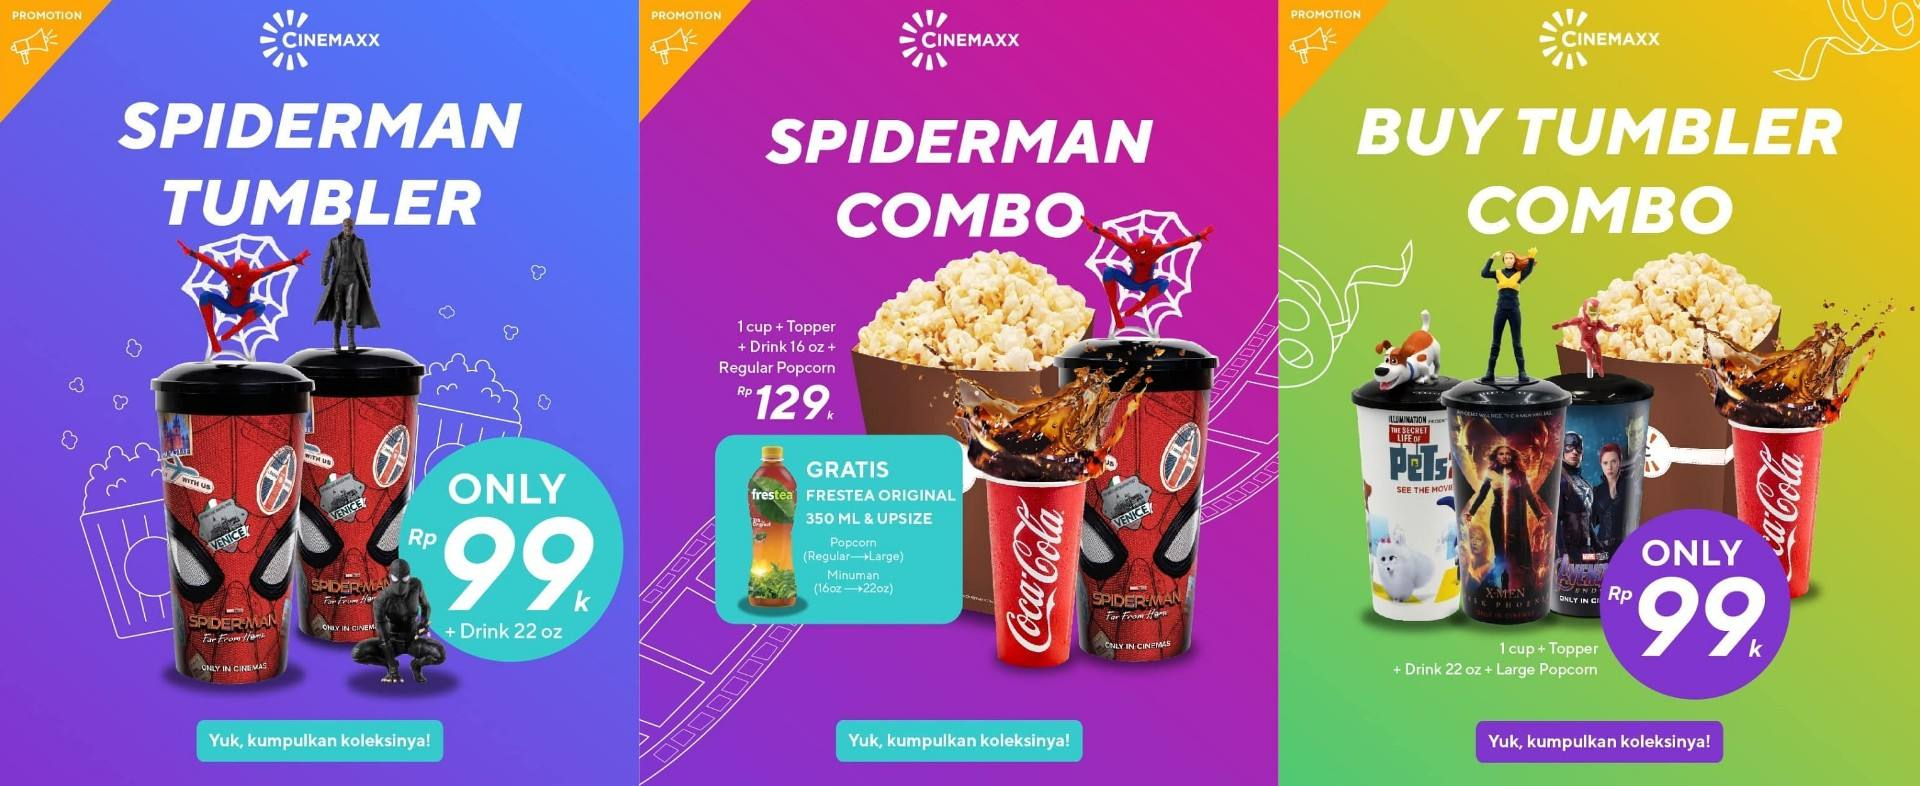 CINEMAXX Promo Paket dan Eksklusif Merchandise Spiderman Far From Home